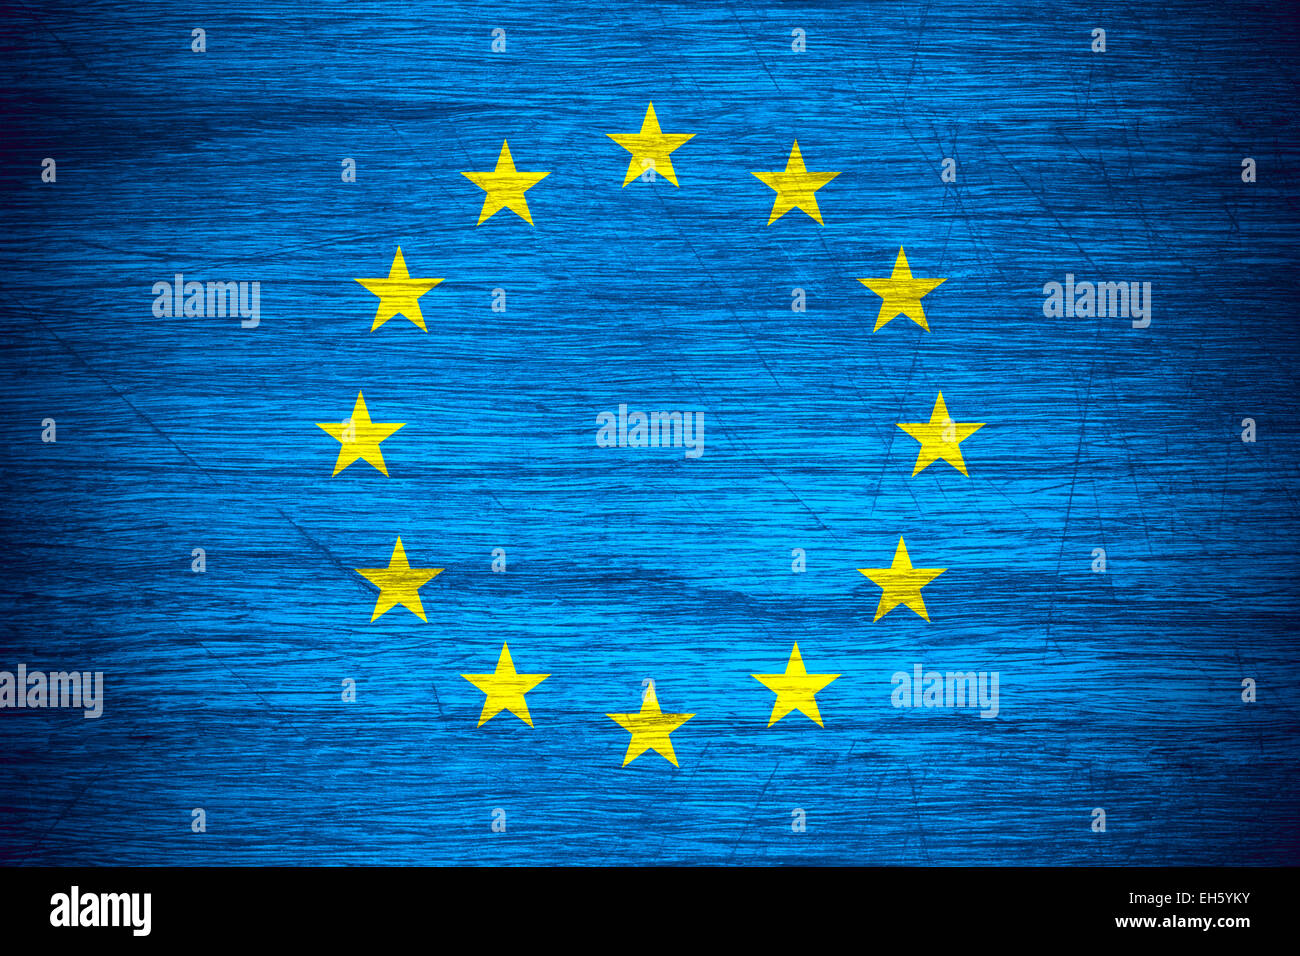 European Union flag or Europe banner on wooden texture - Stock Image